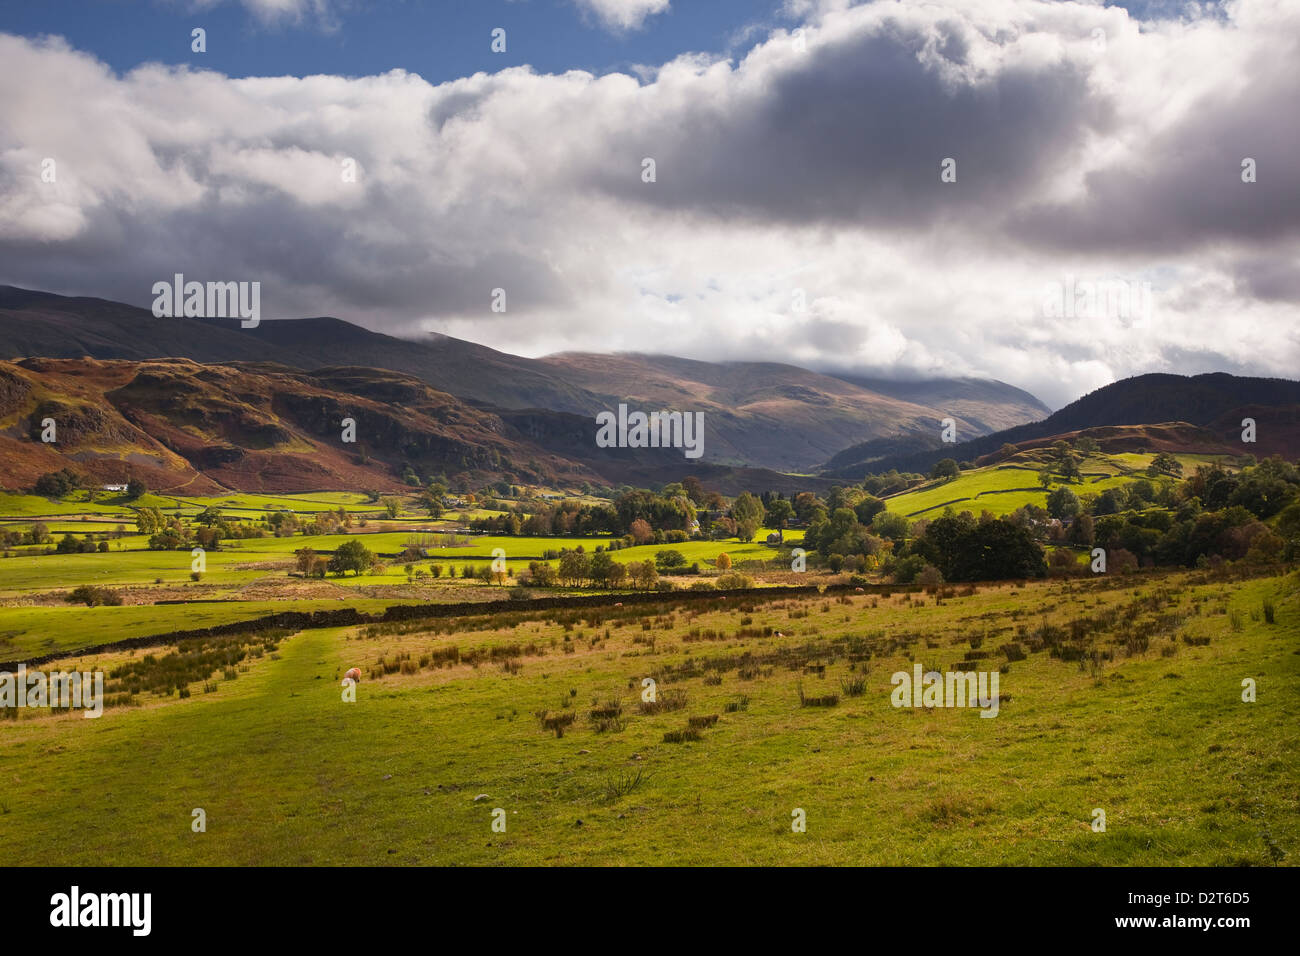 Looking towards Hartsop and the surrounding fells such as Hartsop Dodd in the Lake District National Park, Cumbria, - Stock Image